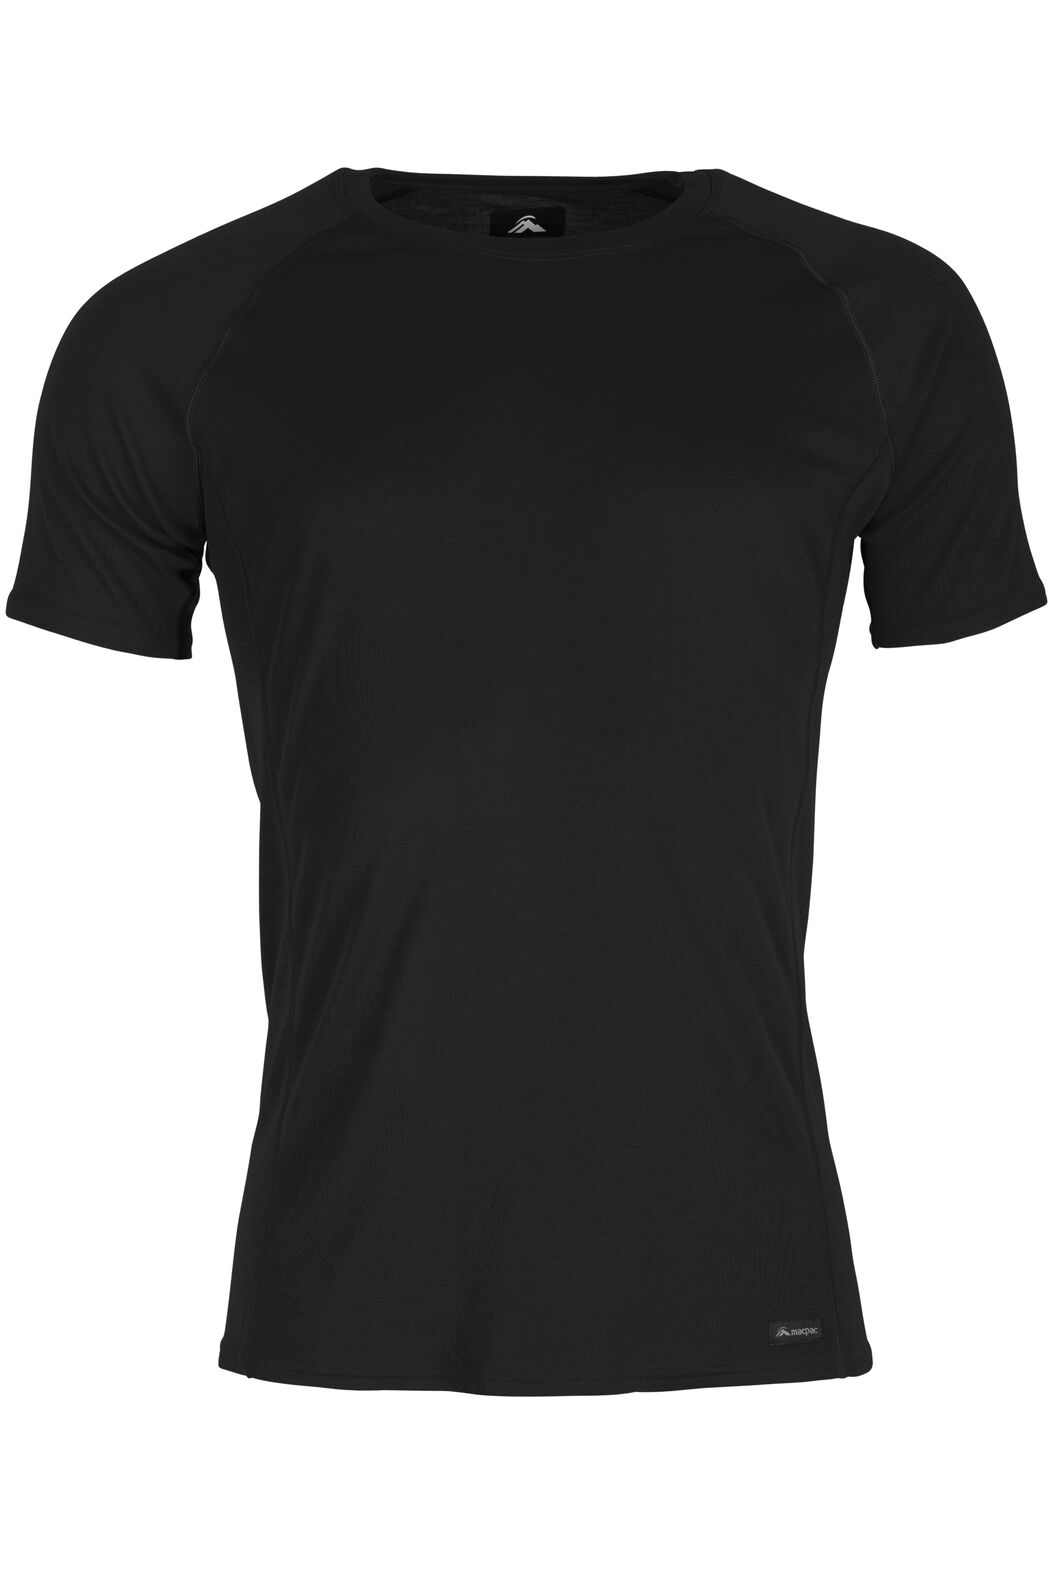 Macpac Geothermal Short Sleeve Top — Men's, Black, hi-res